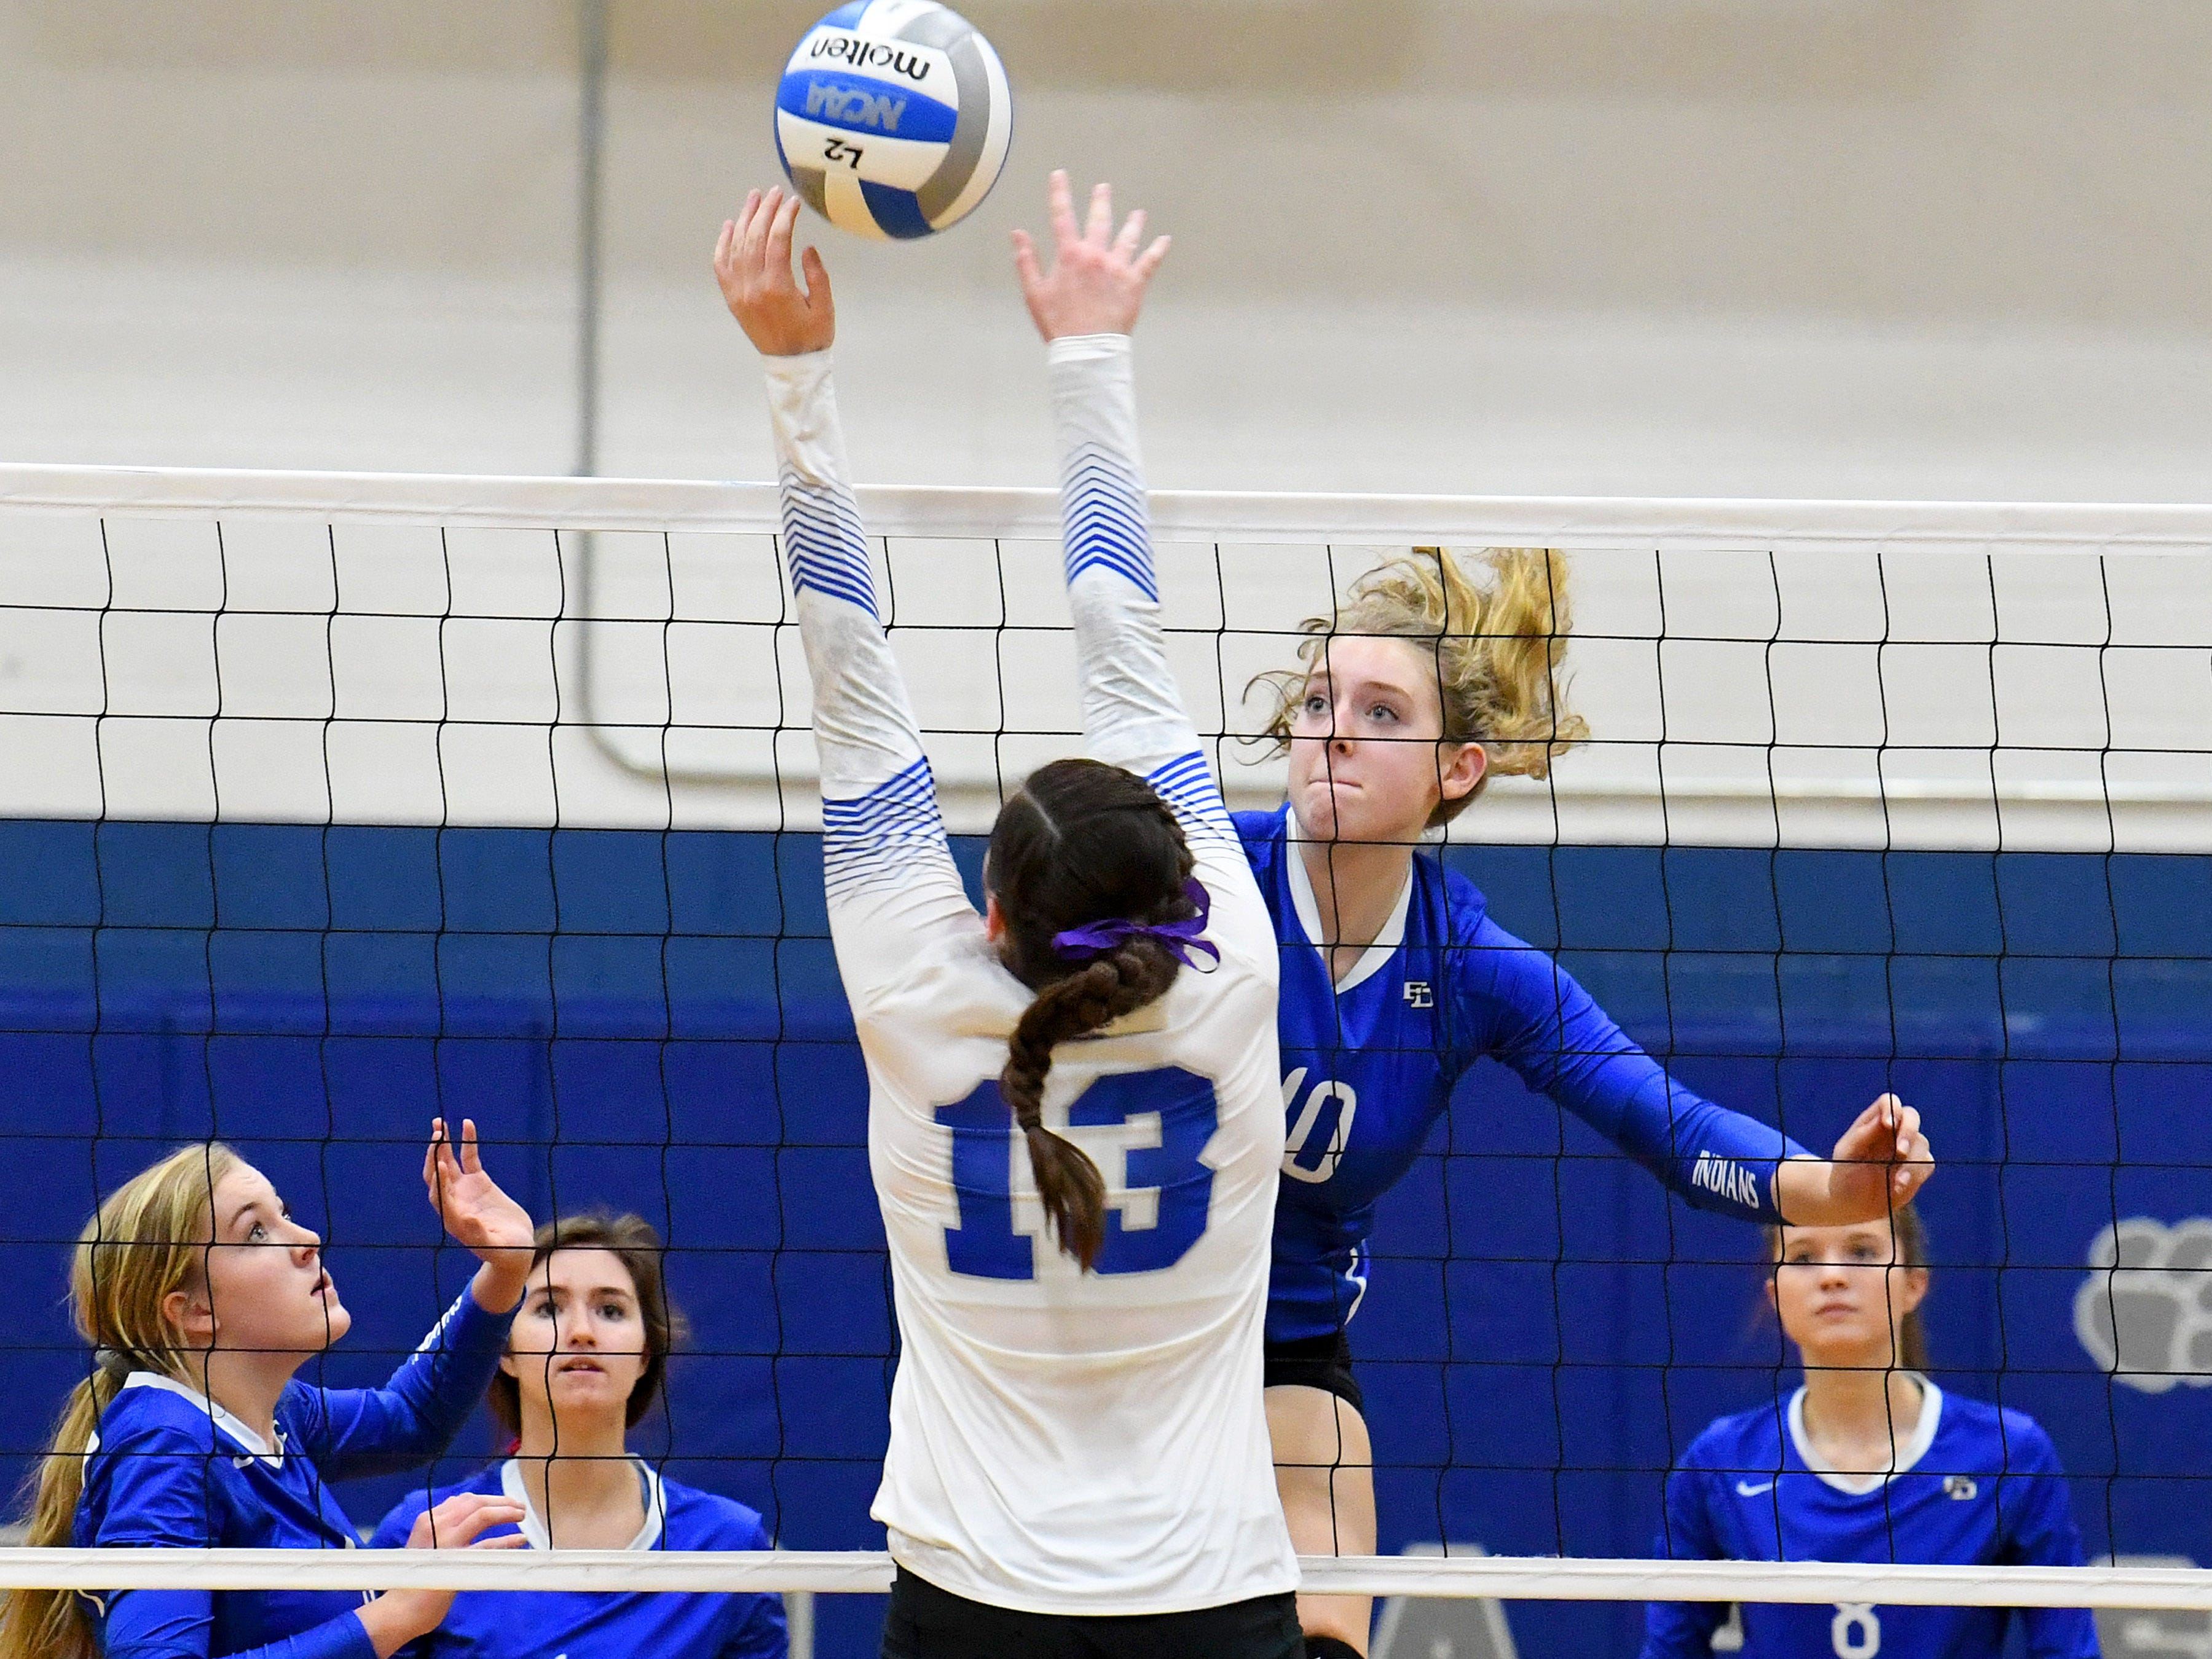 Fort Defiance's Catie Cramer hits the ball past Rockbridge County's Graceon Armstrong during a Region 3C semifinal match played in Lexington on Monday, Nov. 5, 2018.